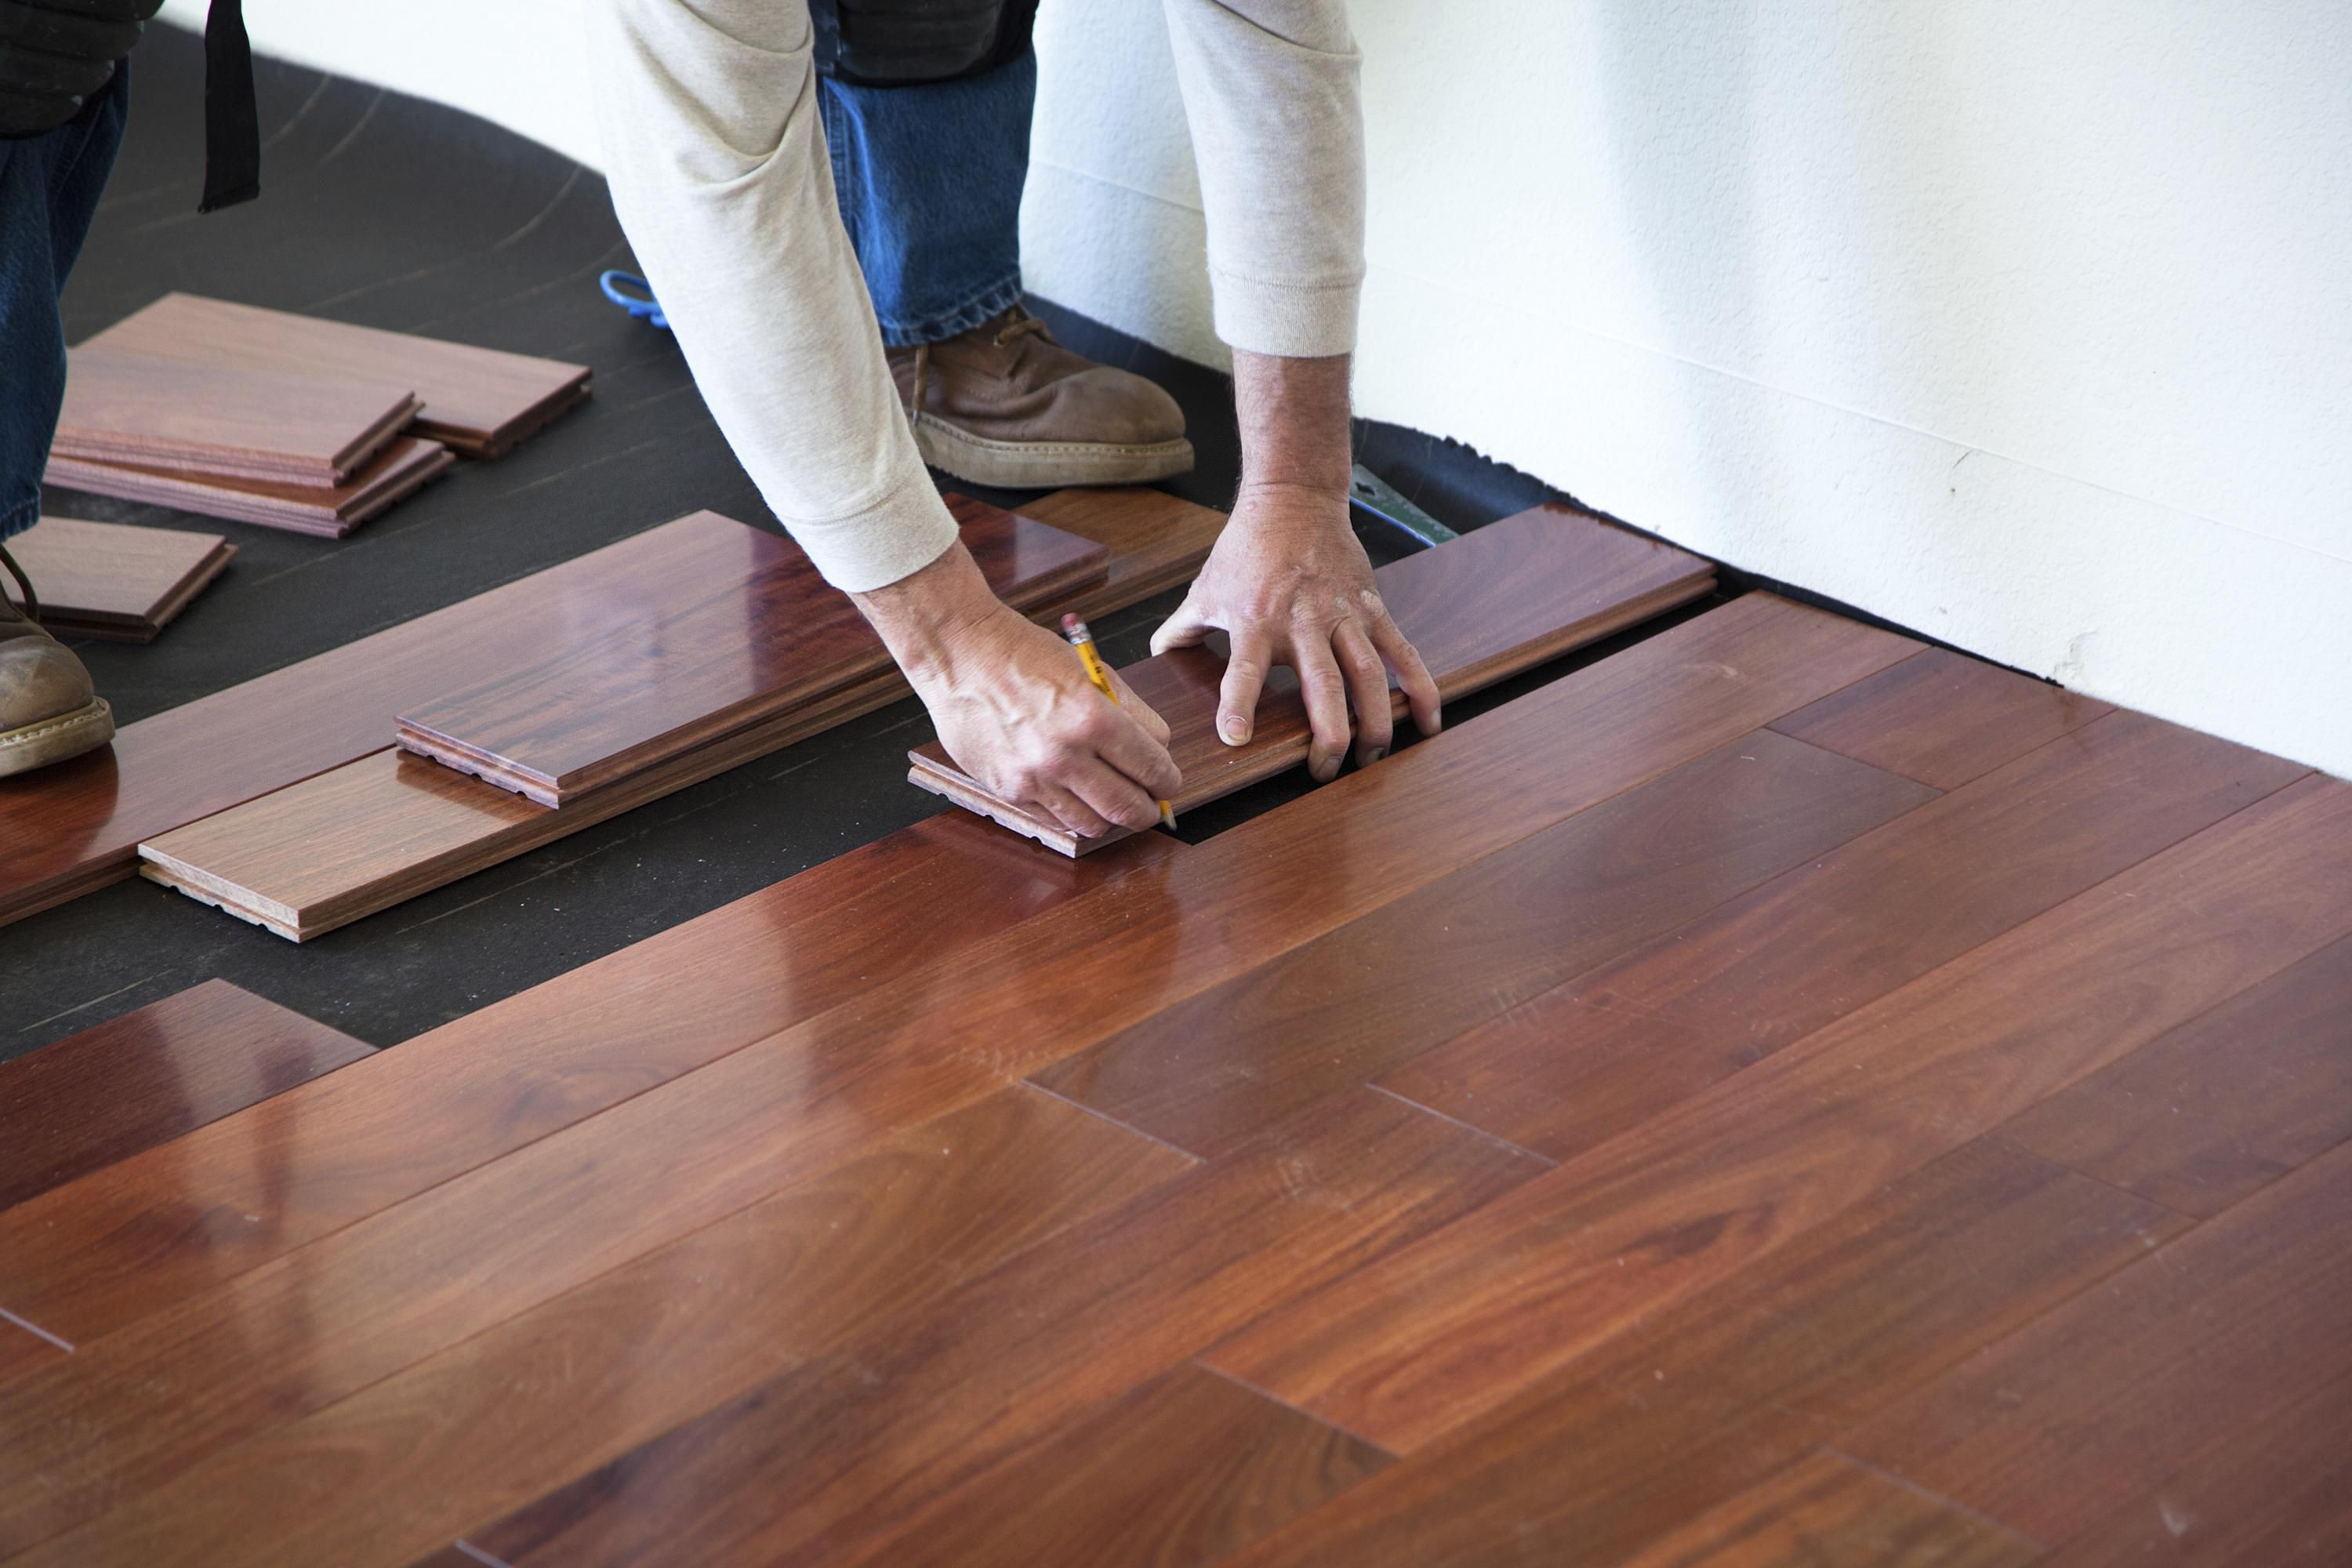 28 Fashionable Hardwood Floor Price Calculator 2021 free download hardwood floor price calculator of this is how much hardwood flooring to order with 170040982 56a49f213df78cf772834e21